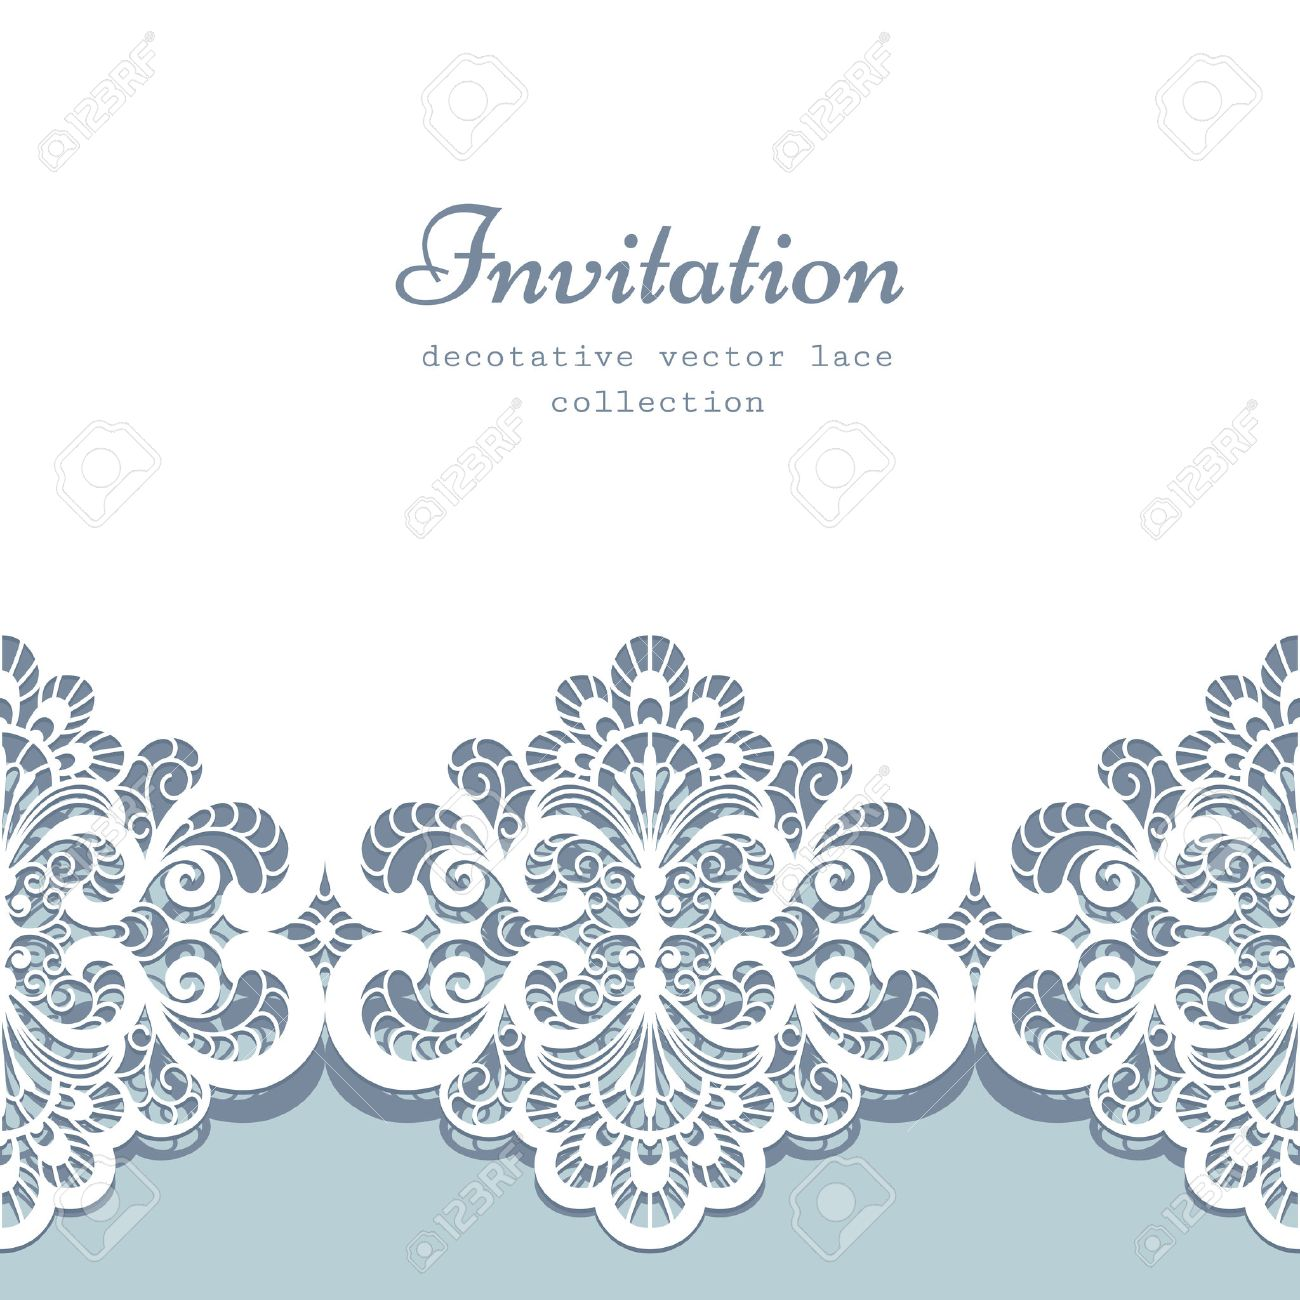 Elegant Greeting Card Or Wedding Invitation Template With Lace – Invitation Templete